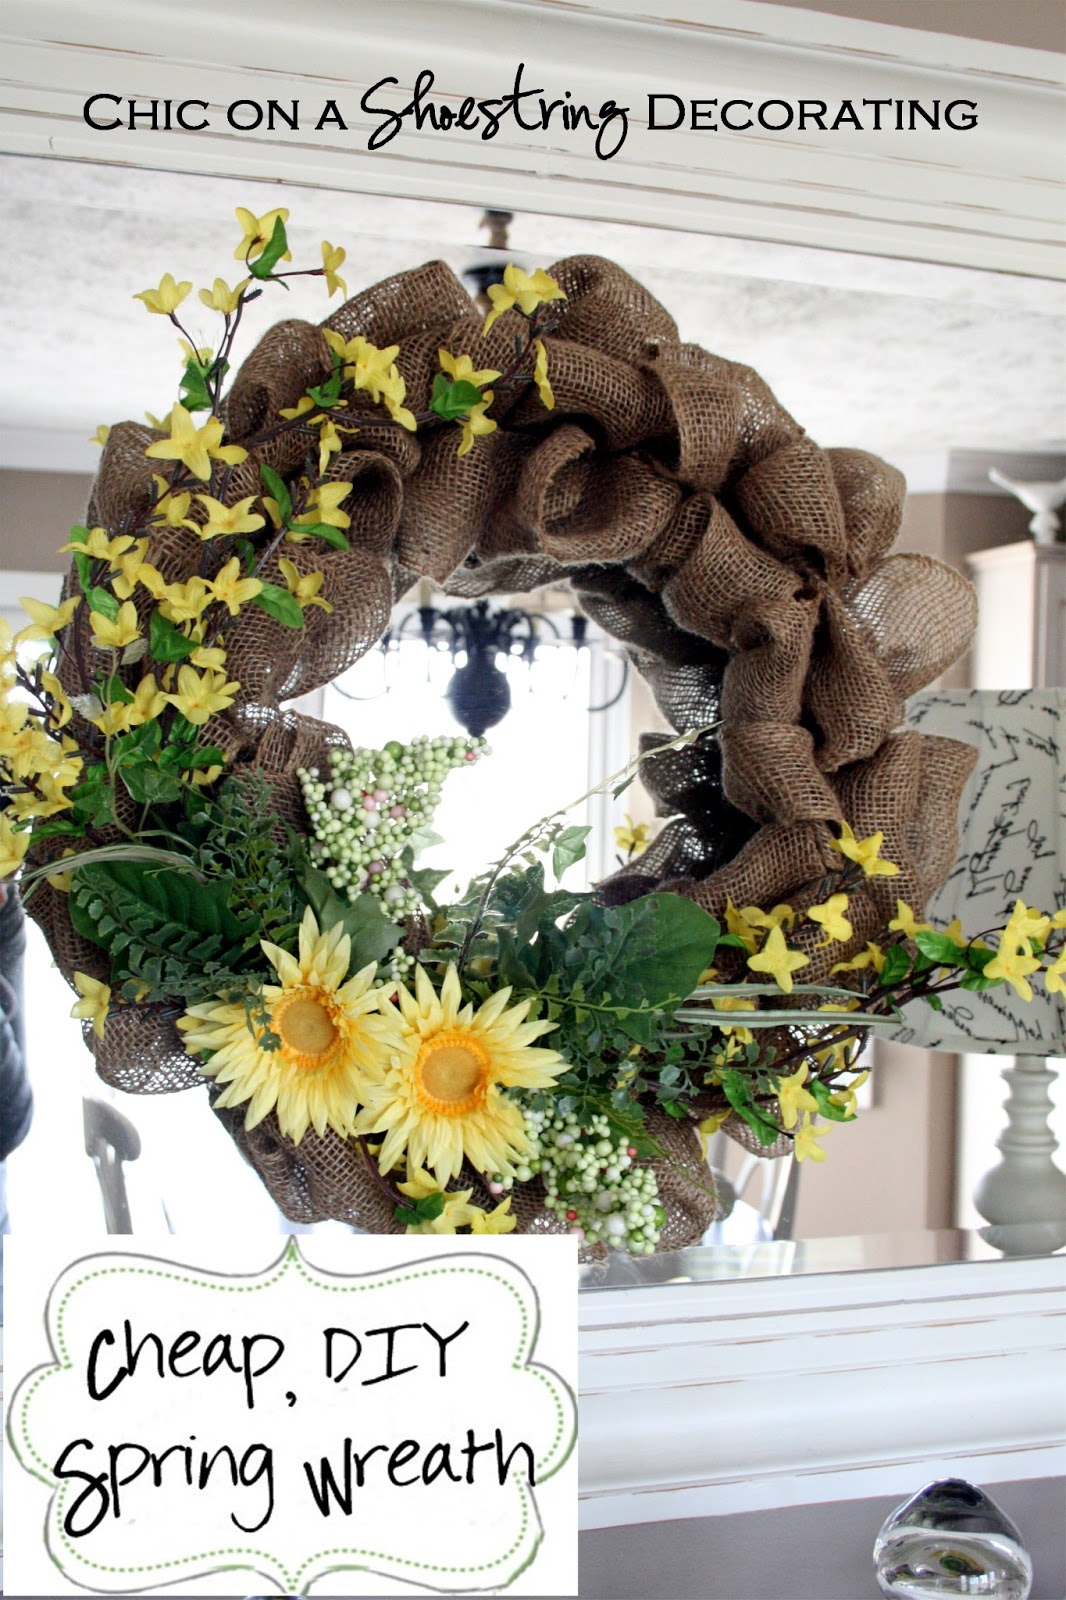 Chic on a Shoestring Decorating: Cheap, DIY Spring Wreath ...